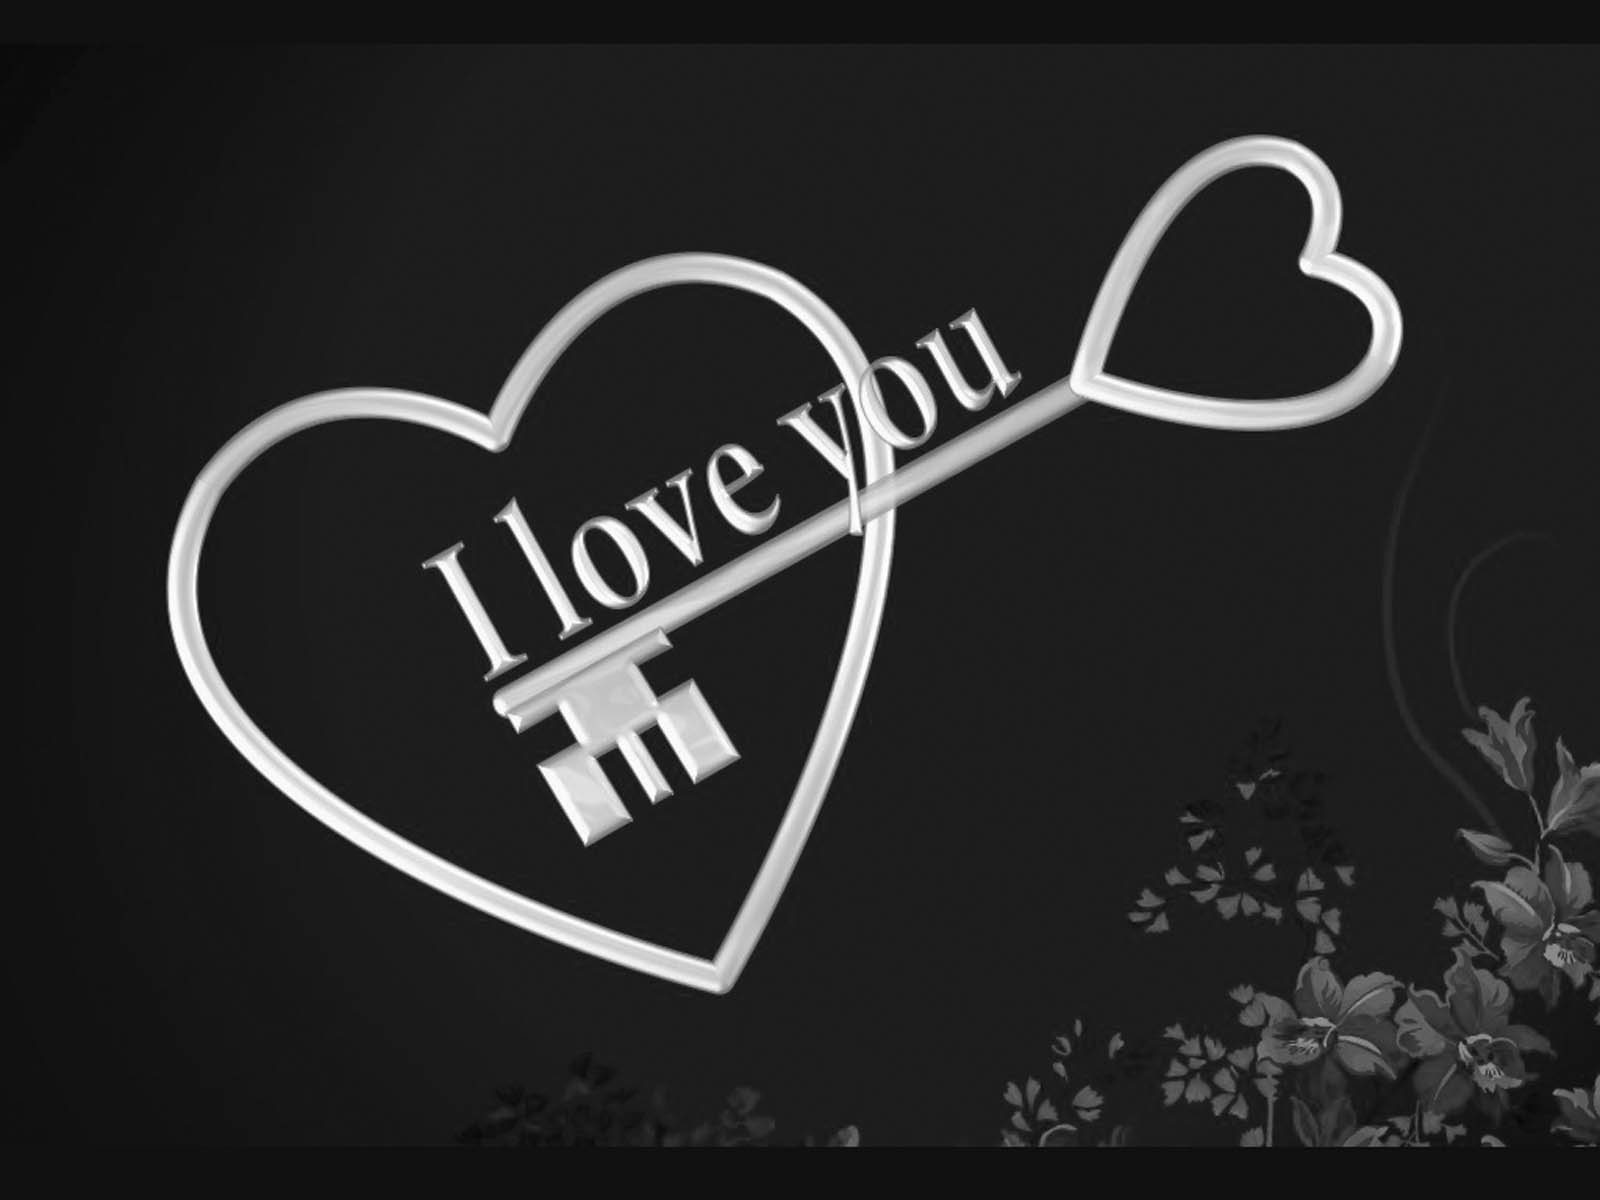 wallpapers Black and White Love Wallpapers 1600x1200